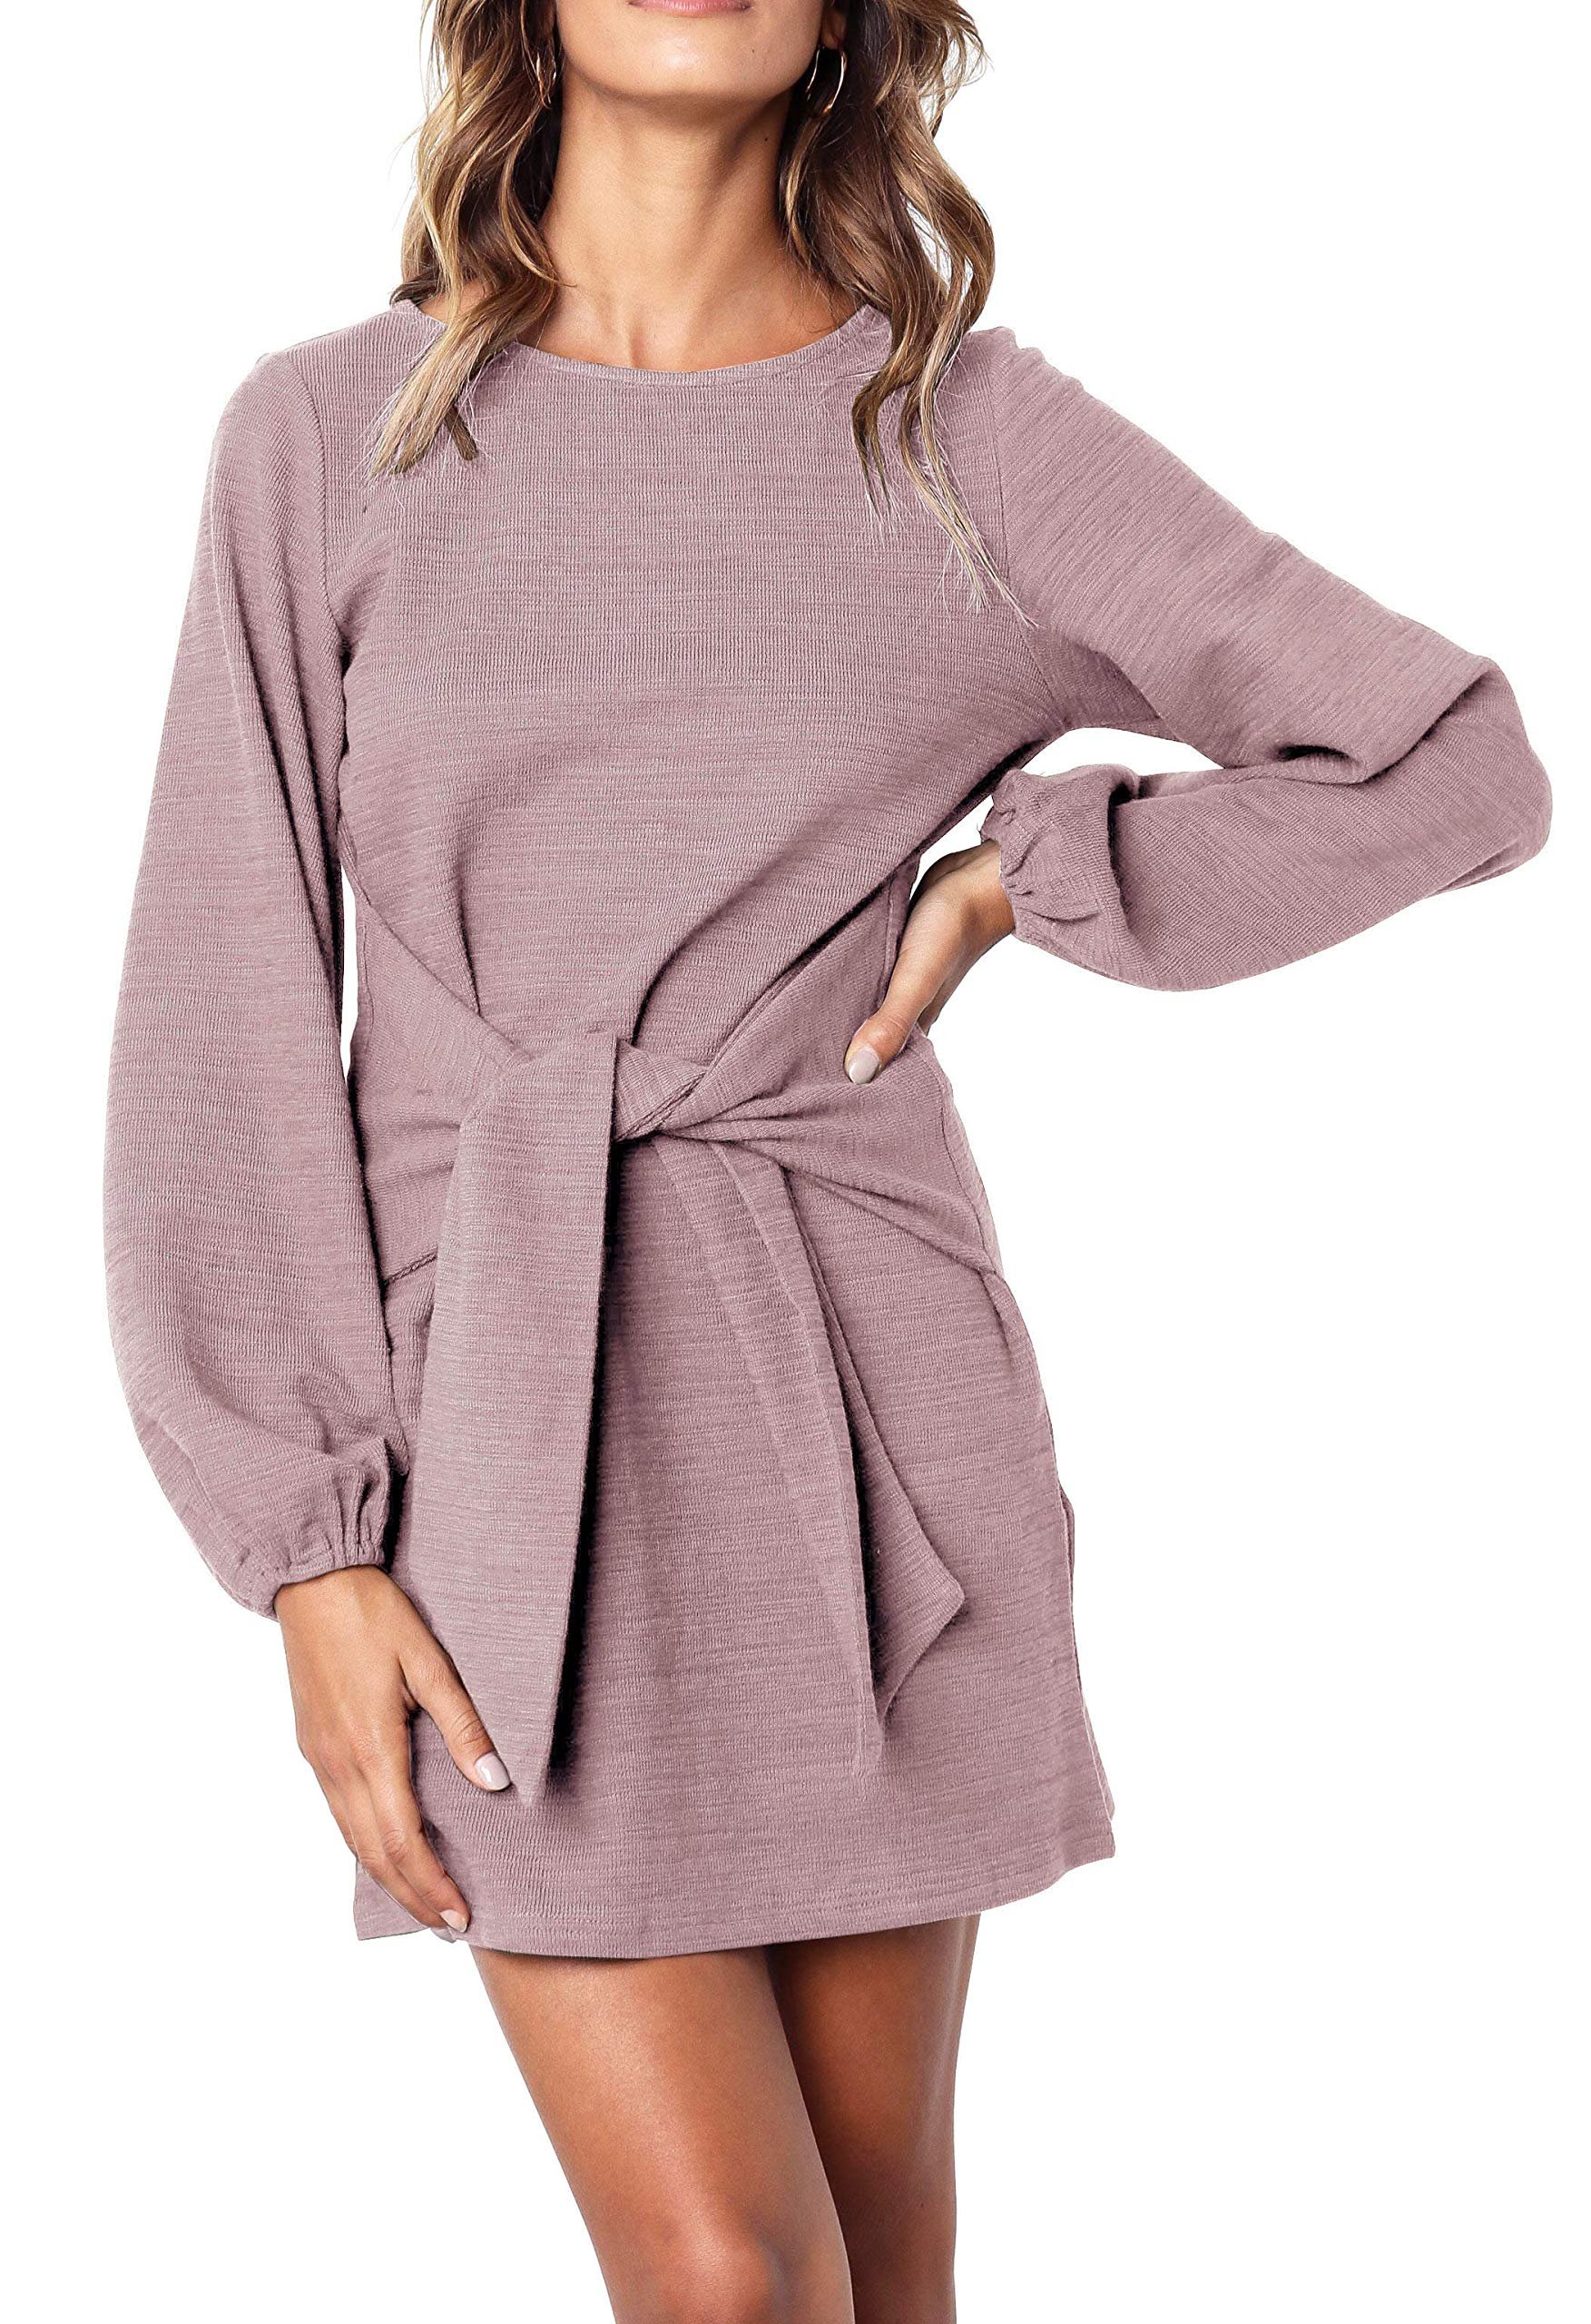 R.Vivimos Women's Autumn Winter Cotton Long Sleeves Elegant Knitted Bodycon Tie Waist Sweater Pencil Dress (Large, Light Violet)